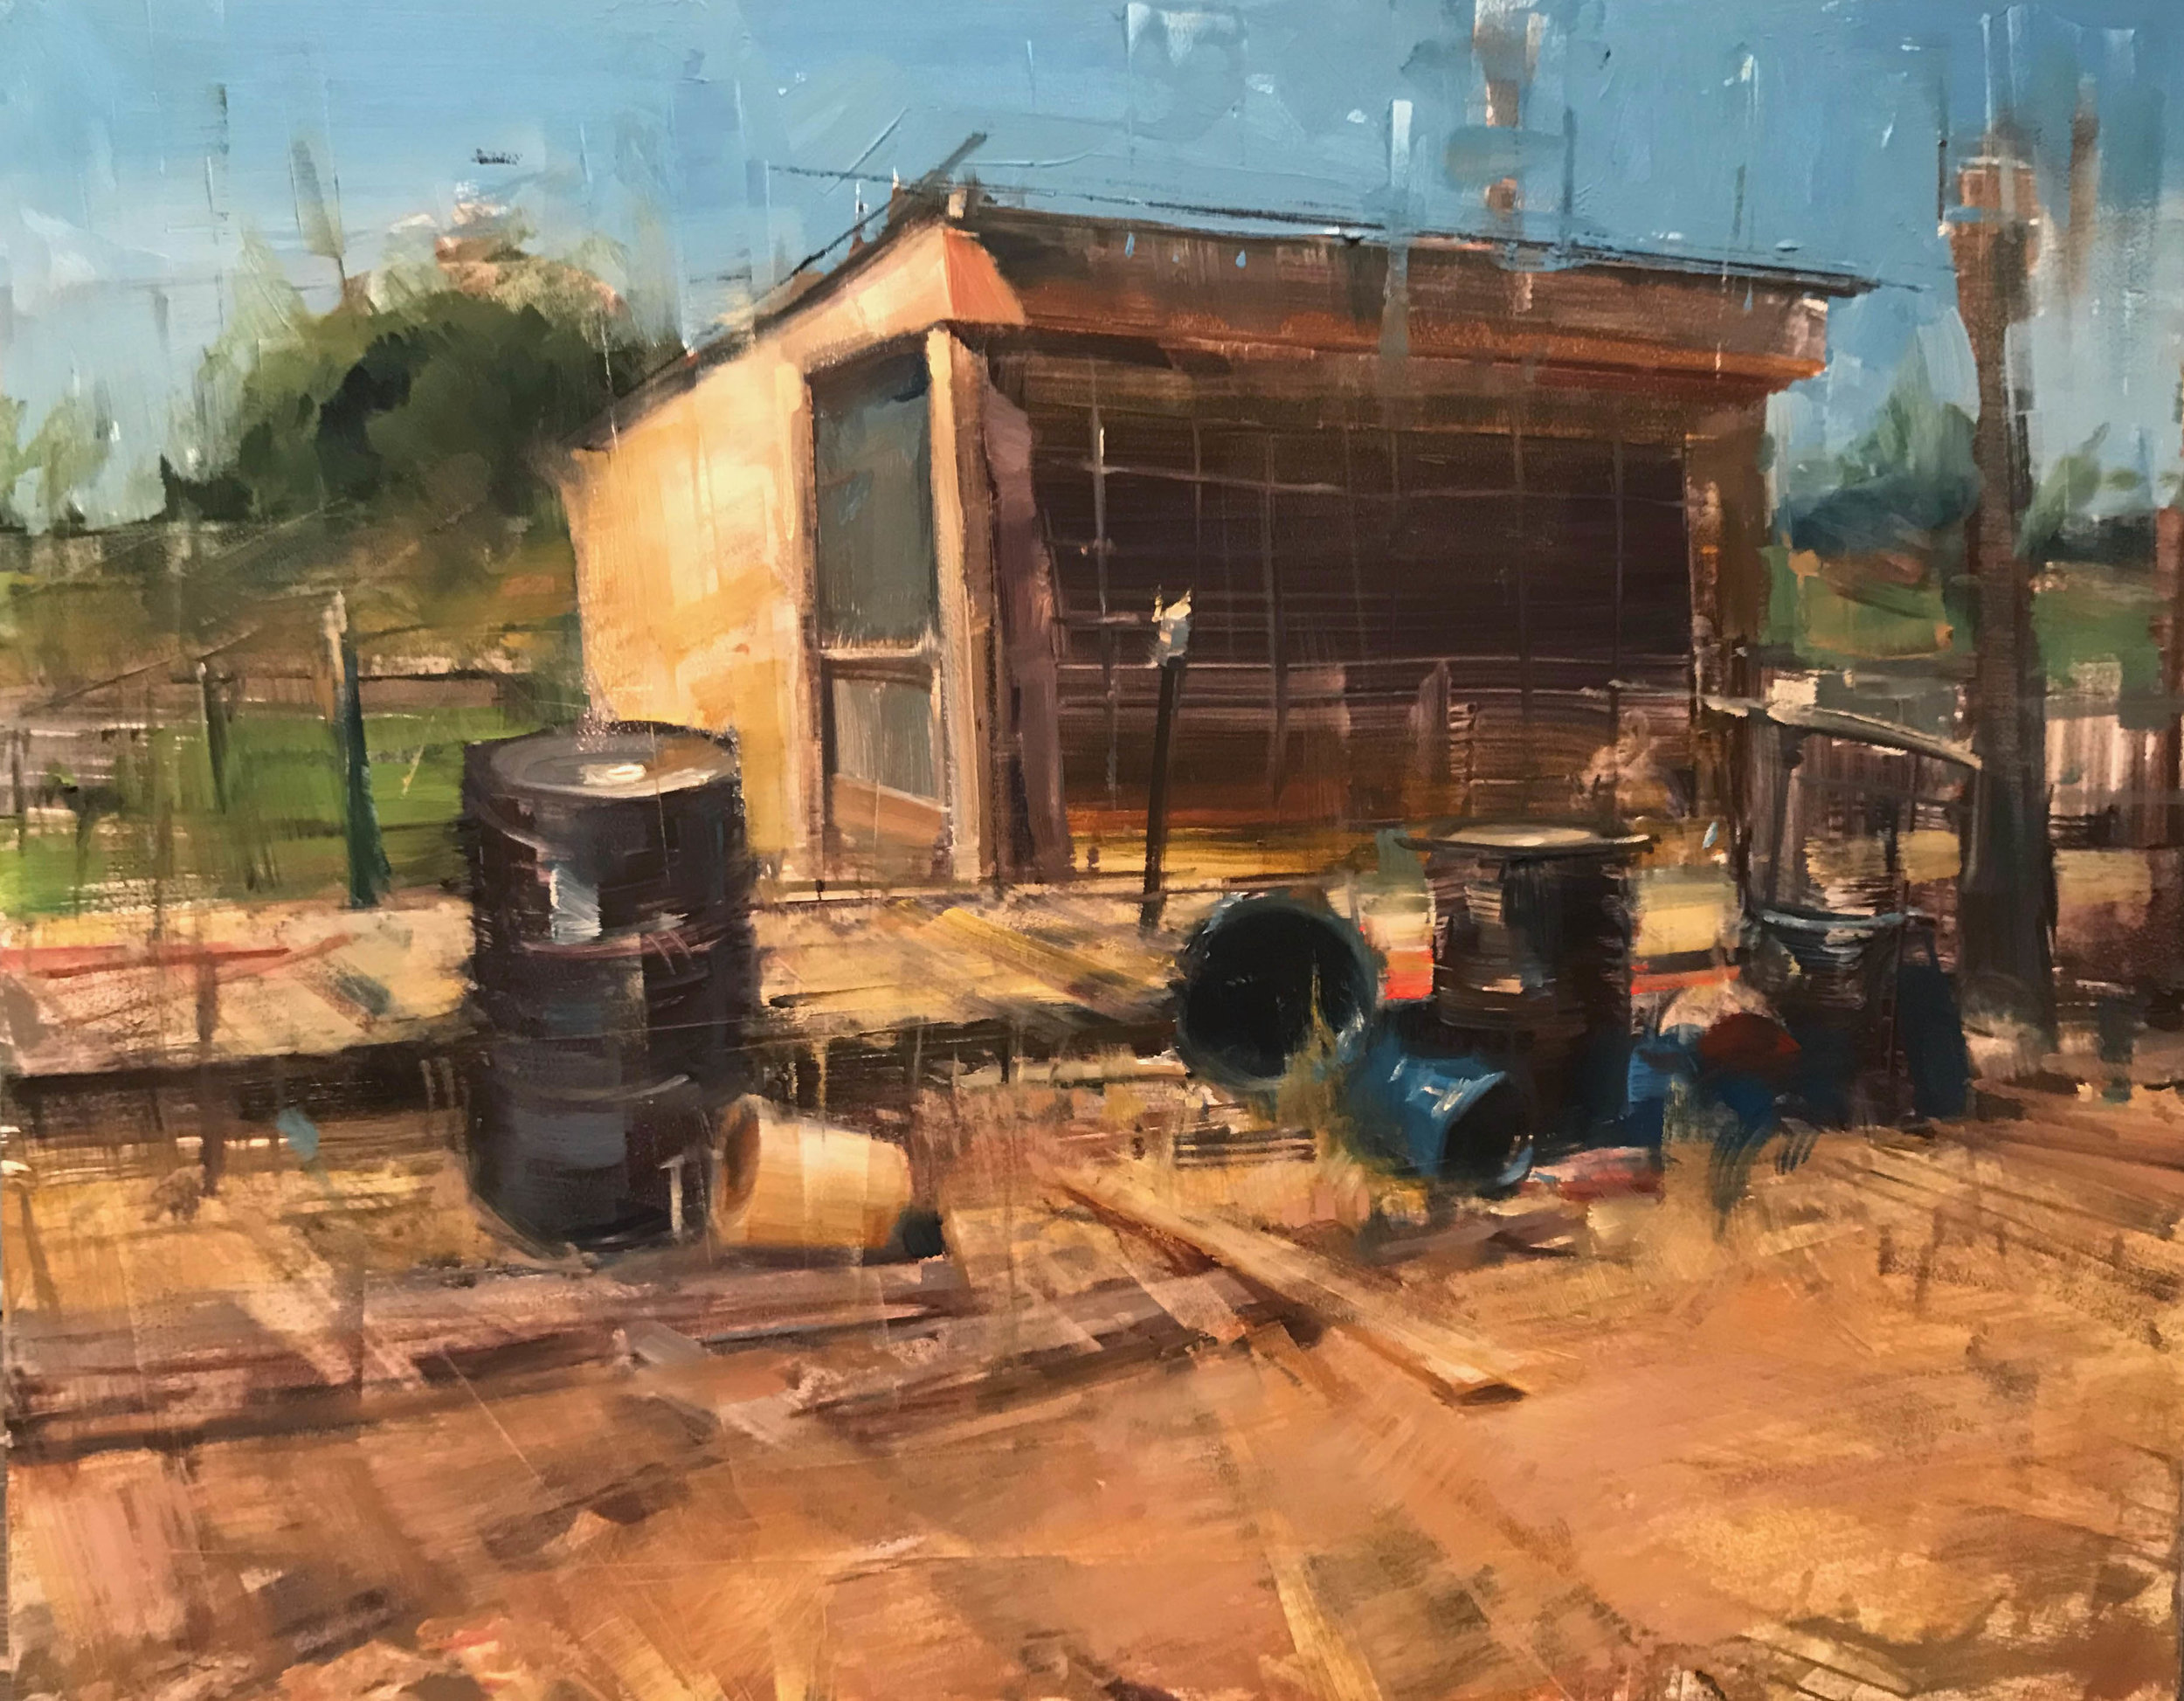 Bryan Mark Taylor. Chicken Coup (2017) 11 x 14 in. Oil on panel.